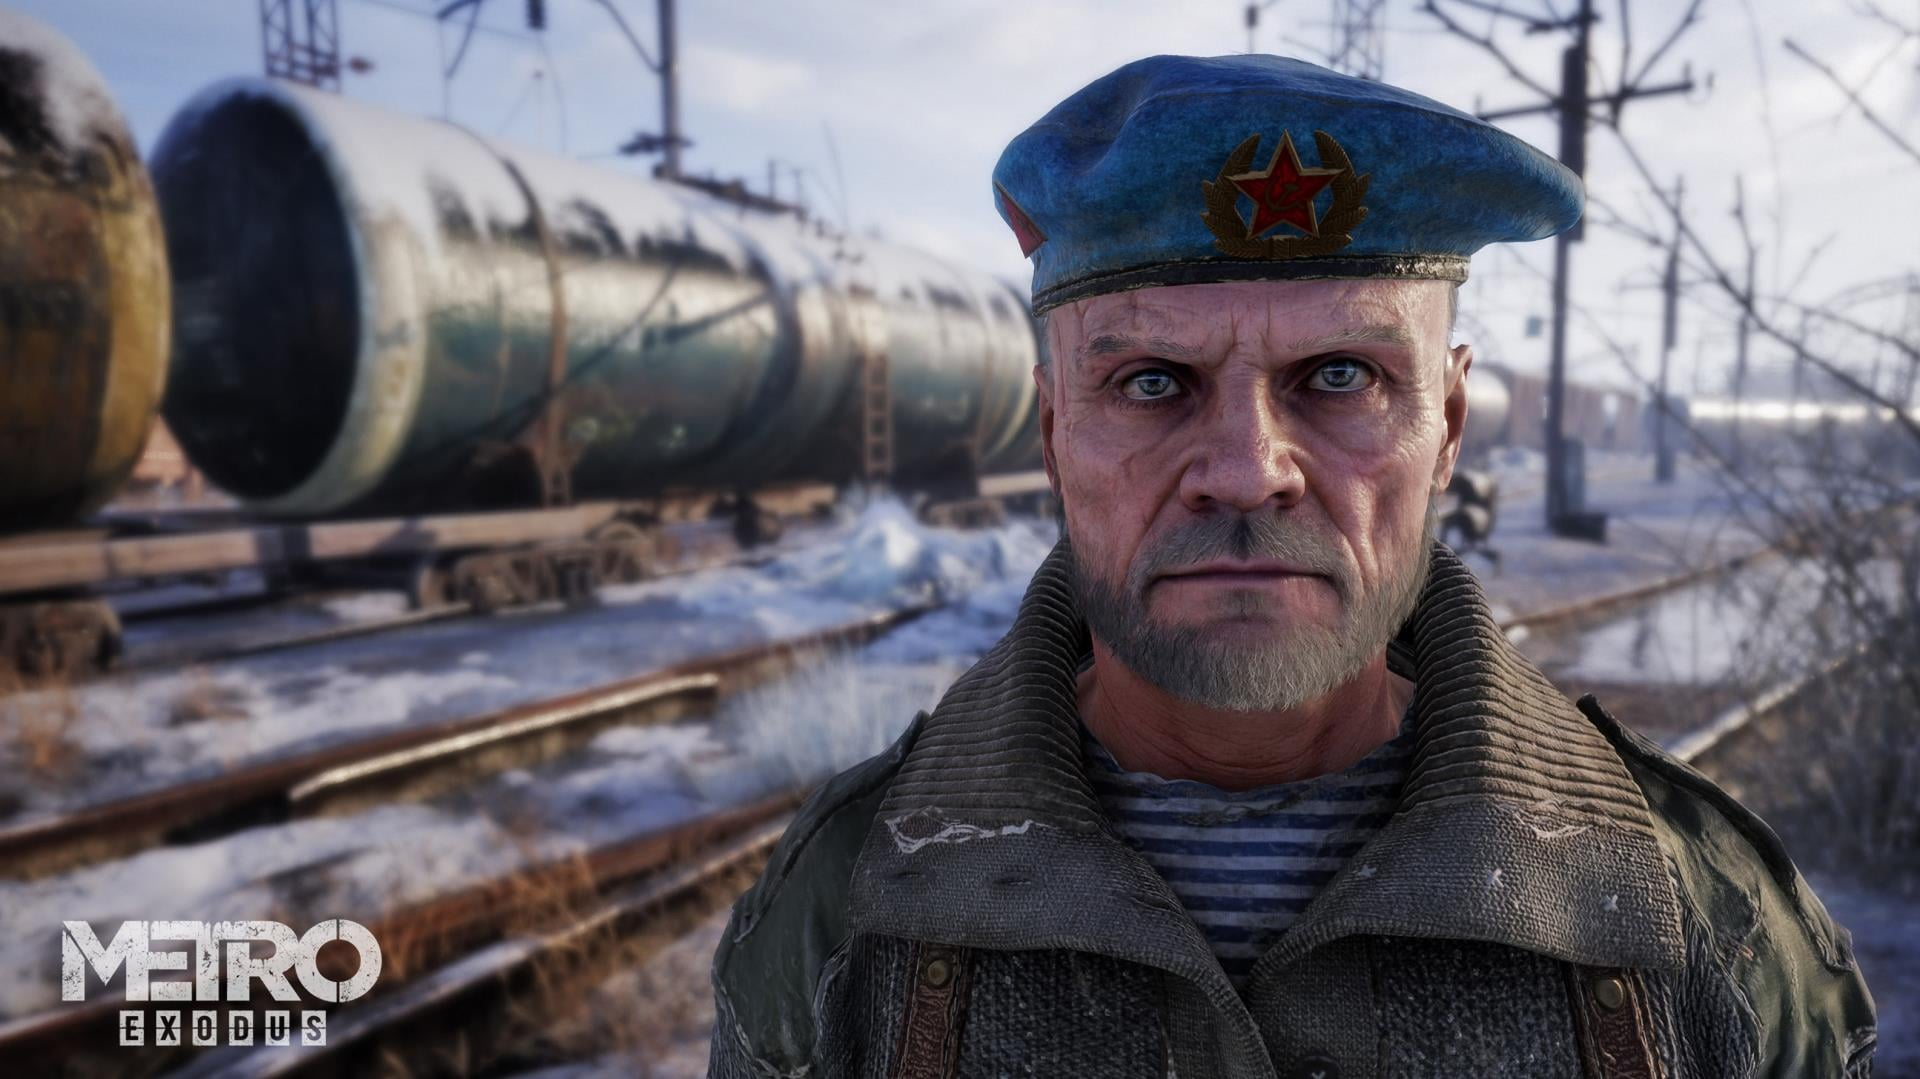 Metro Exodus Studio Details Next-Gen Upgrade and Future Metro Game